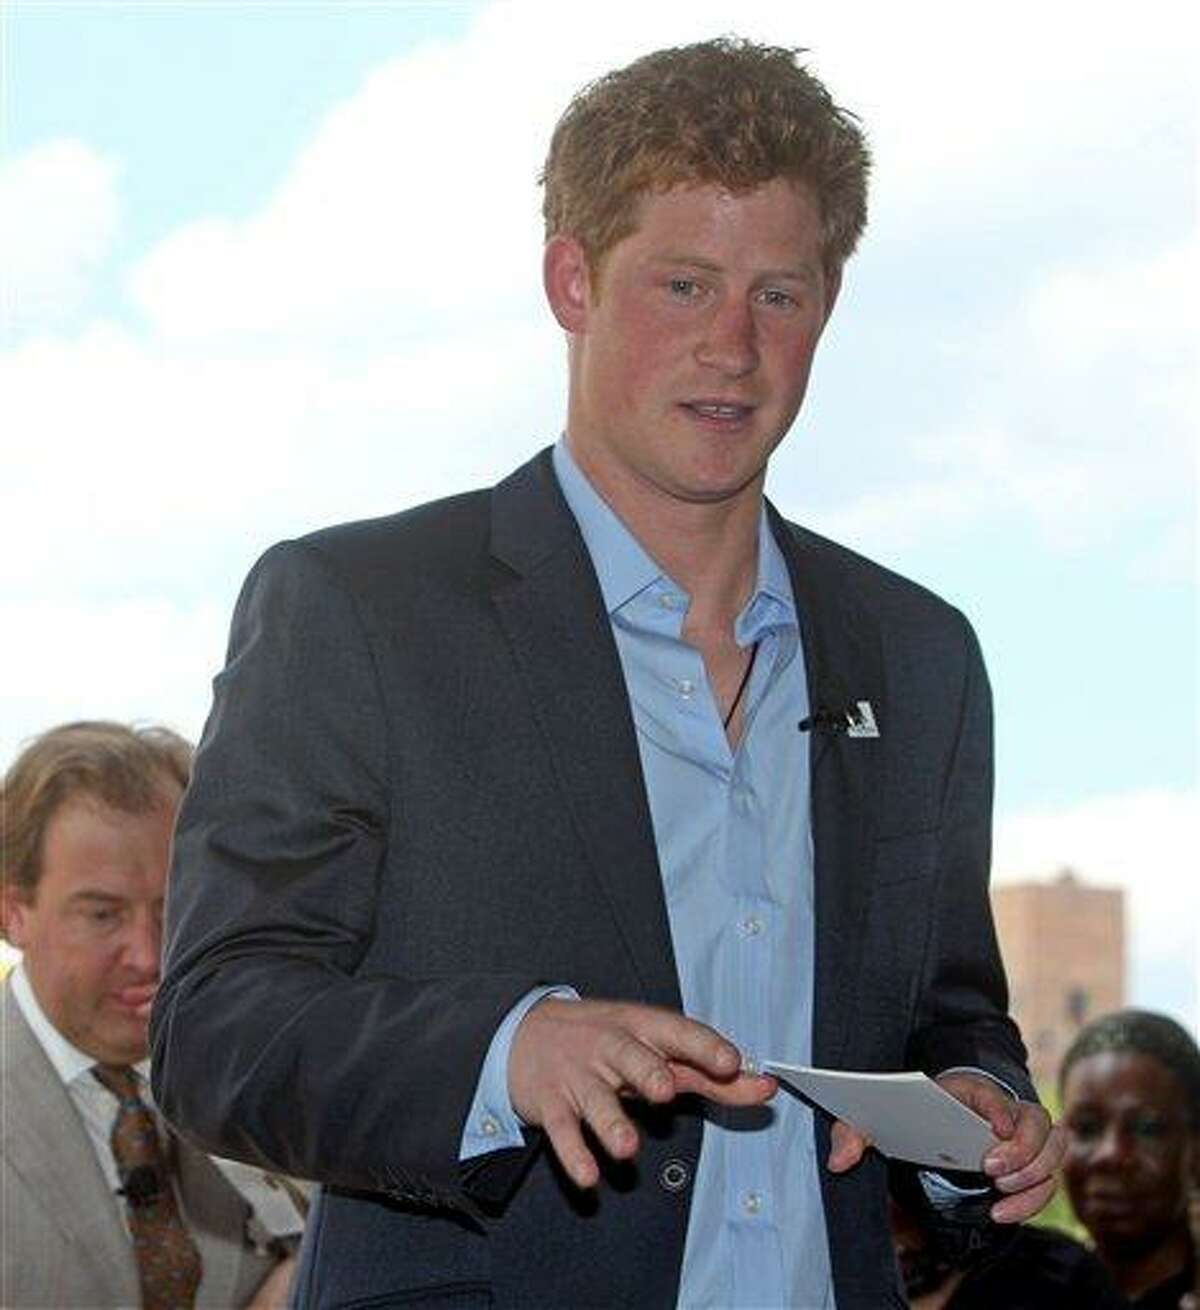 In this file photo taken Saturday May 30, 2009, Britain's Prince Harry addresses guests at the second annual Veuve Clicquot Manhattan Polo Classic polo match on Governor's Island in New York. The Prince sipped a Corona during a Cirque du Soleil show in Las Vegas over the Nov. 19-20 trip and rented a Harley. The British royal made a low-key appearance at a Scottsdale, Ariz., dealership on Friday. The vacation came as the prince is training on helicopters at an Air Force site near Gila Bend, Ariz. (AP)